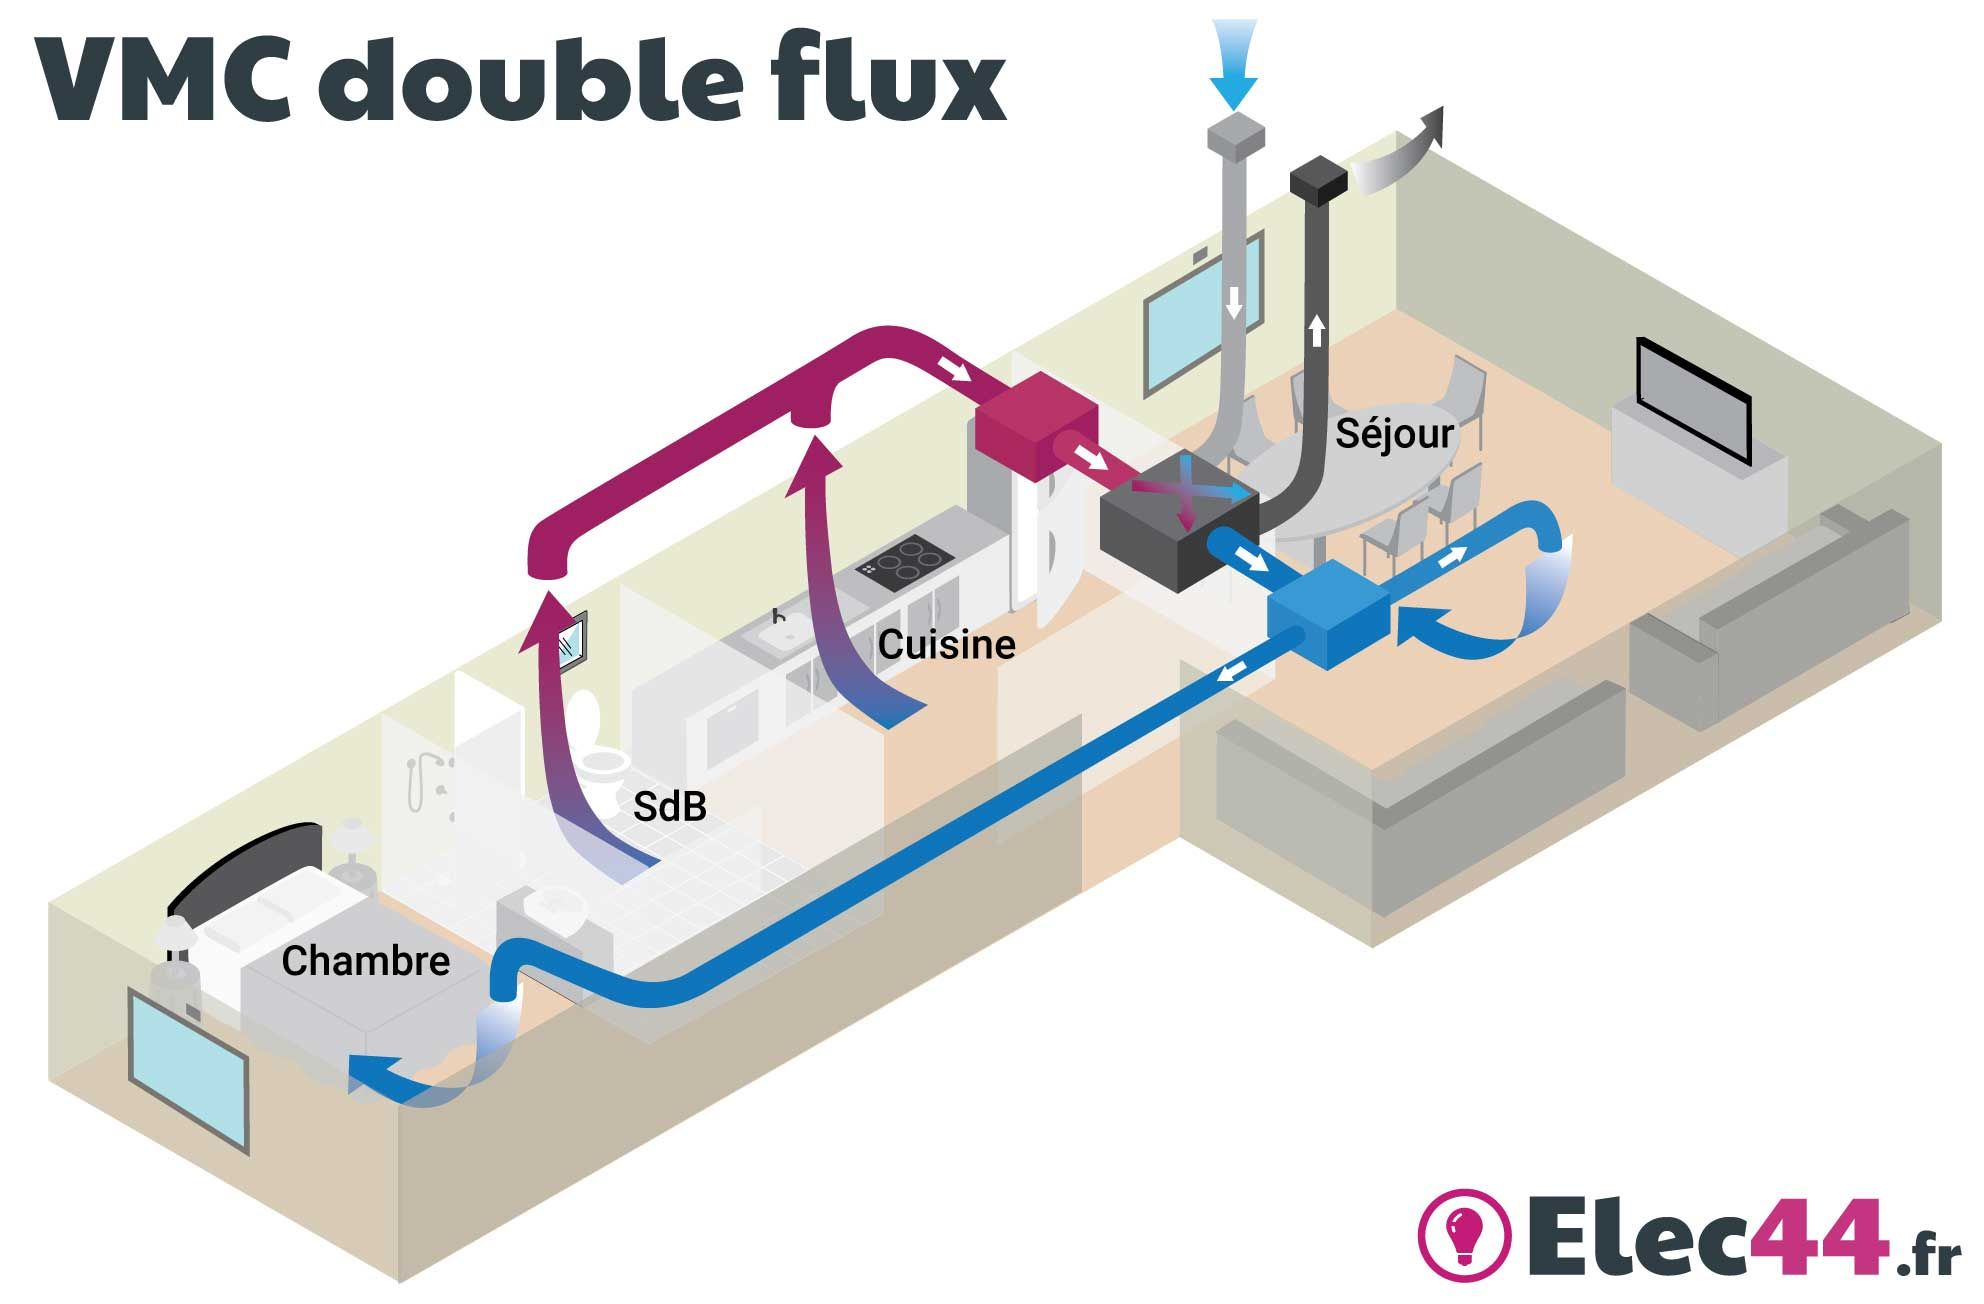 Installer Une Vmc Simple Flux Guide Choisir Sa Vmc Simple Flux Ou Double Flux Sas